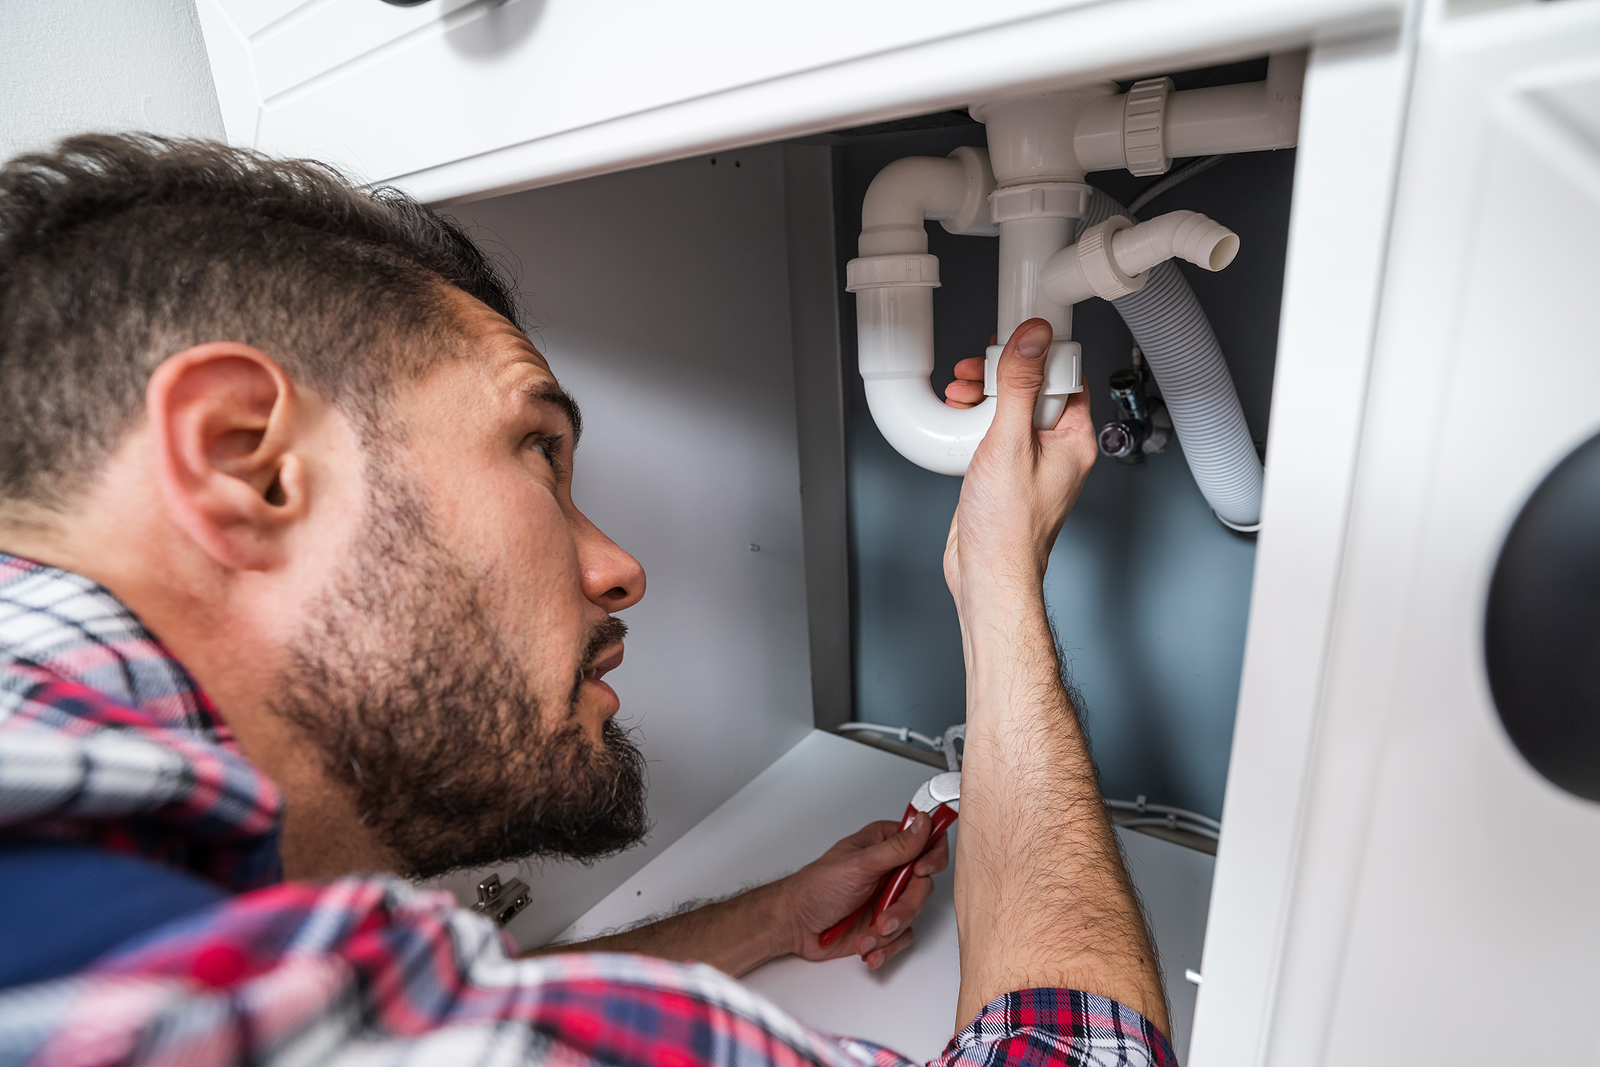 Canberra Plumber fixing the sink